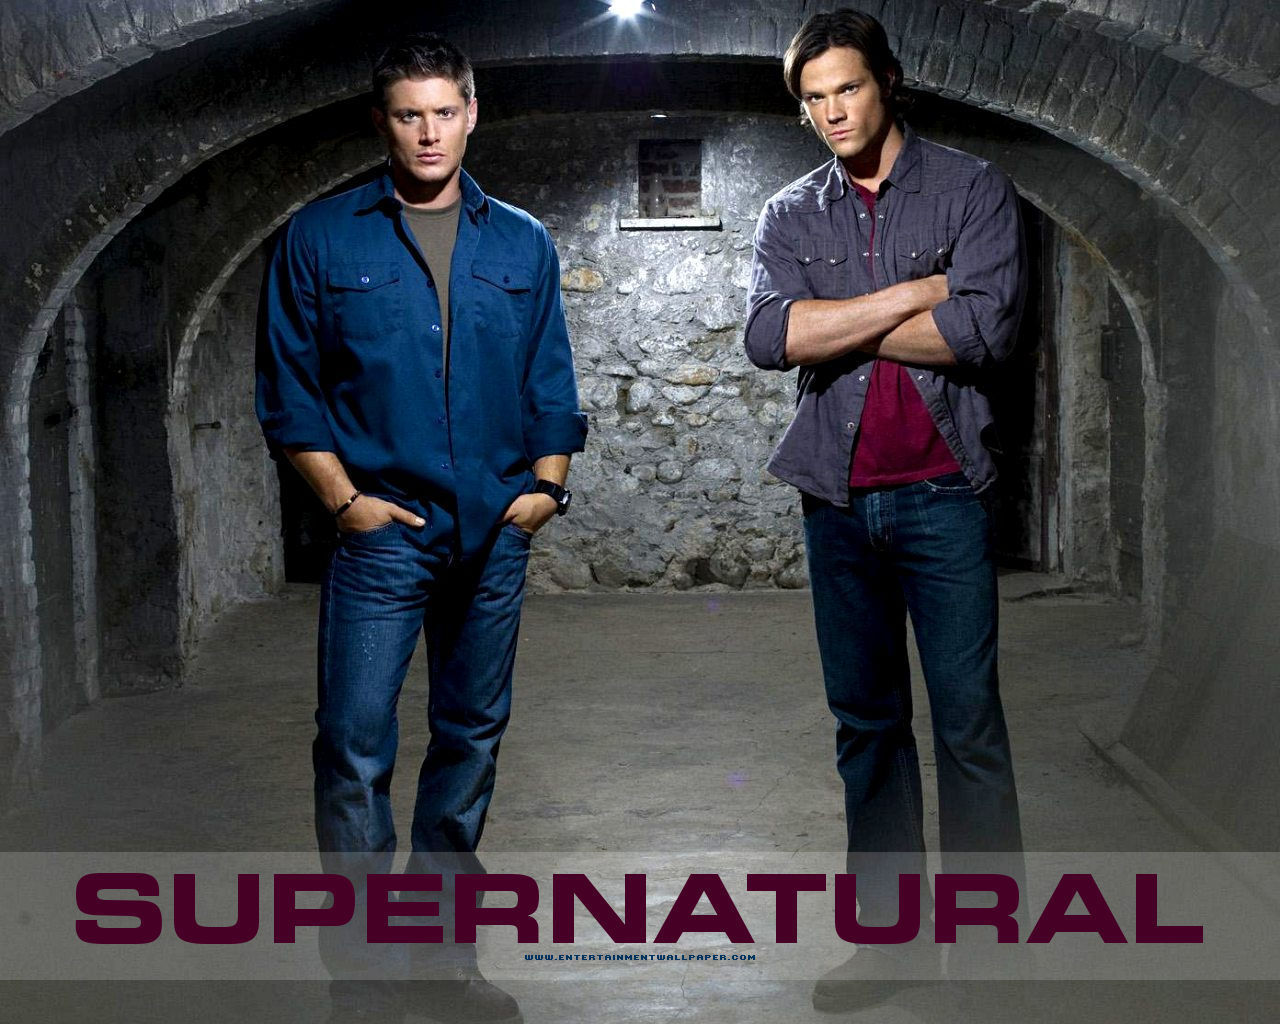 Supernatural characters images Supernatural wallpapers HD ...